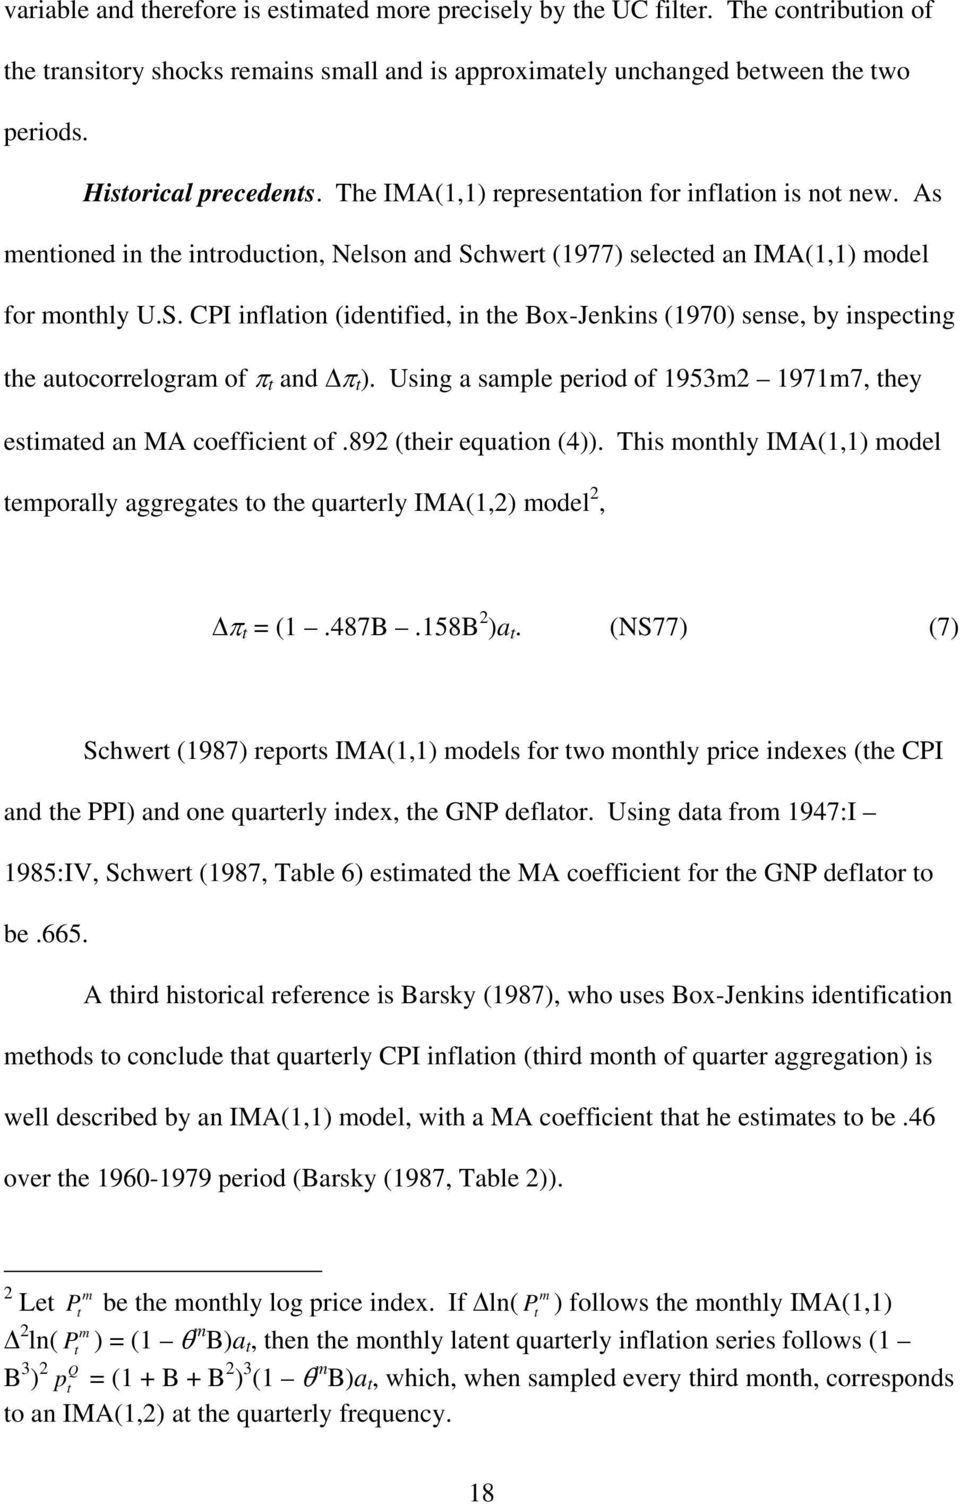 hwert (1977) selected an IMA(1,1) model for monthly U.S. CPI inflation (identified, in the Box-Jenkins (1970) sense, by inspecting the autocorrelogram of π t and Δπ t ).